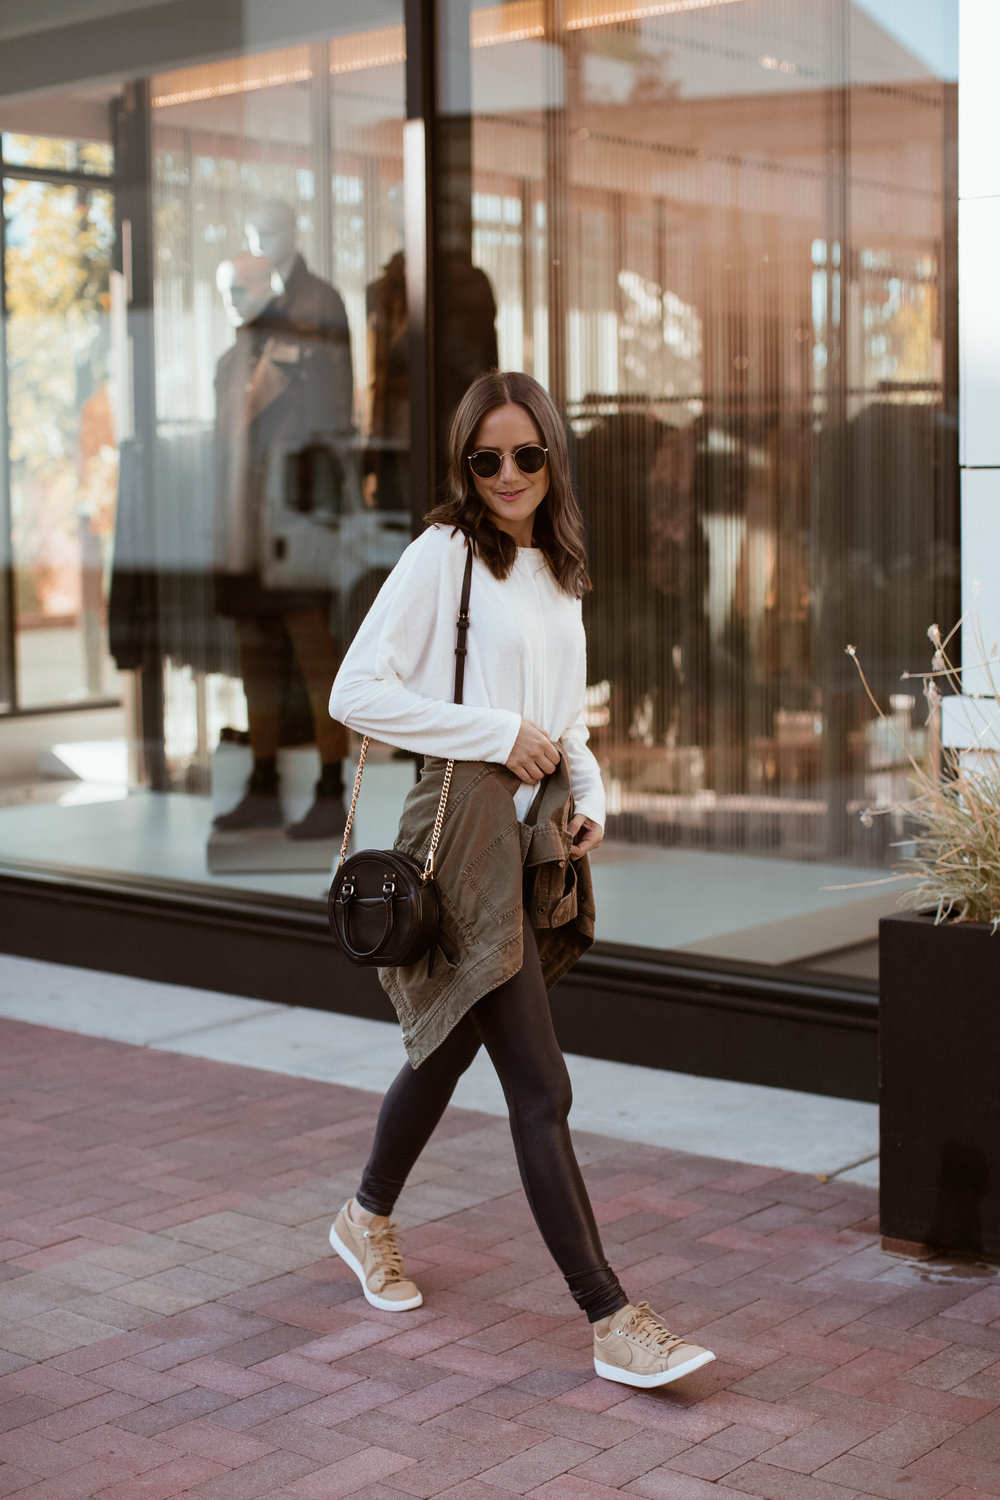 Shop the Look Below.  Nordstrom Rack Sweater  | Spanx Leggings  HERE  and  HERE  |  Nike Sneakers  |  Madewell Jacket  |  Rebecca Minkoff Bag  |  Ray-Ban Sunglasses